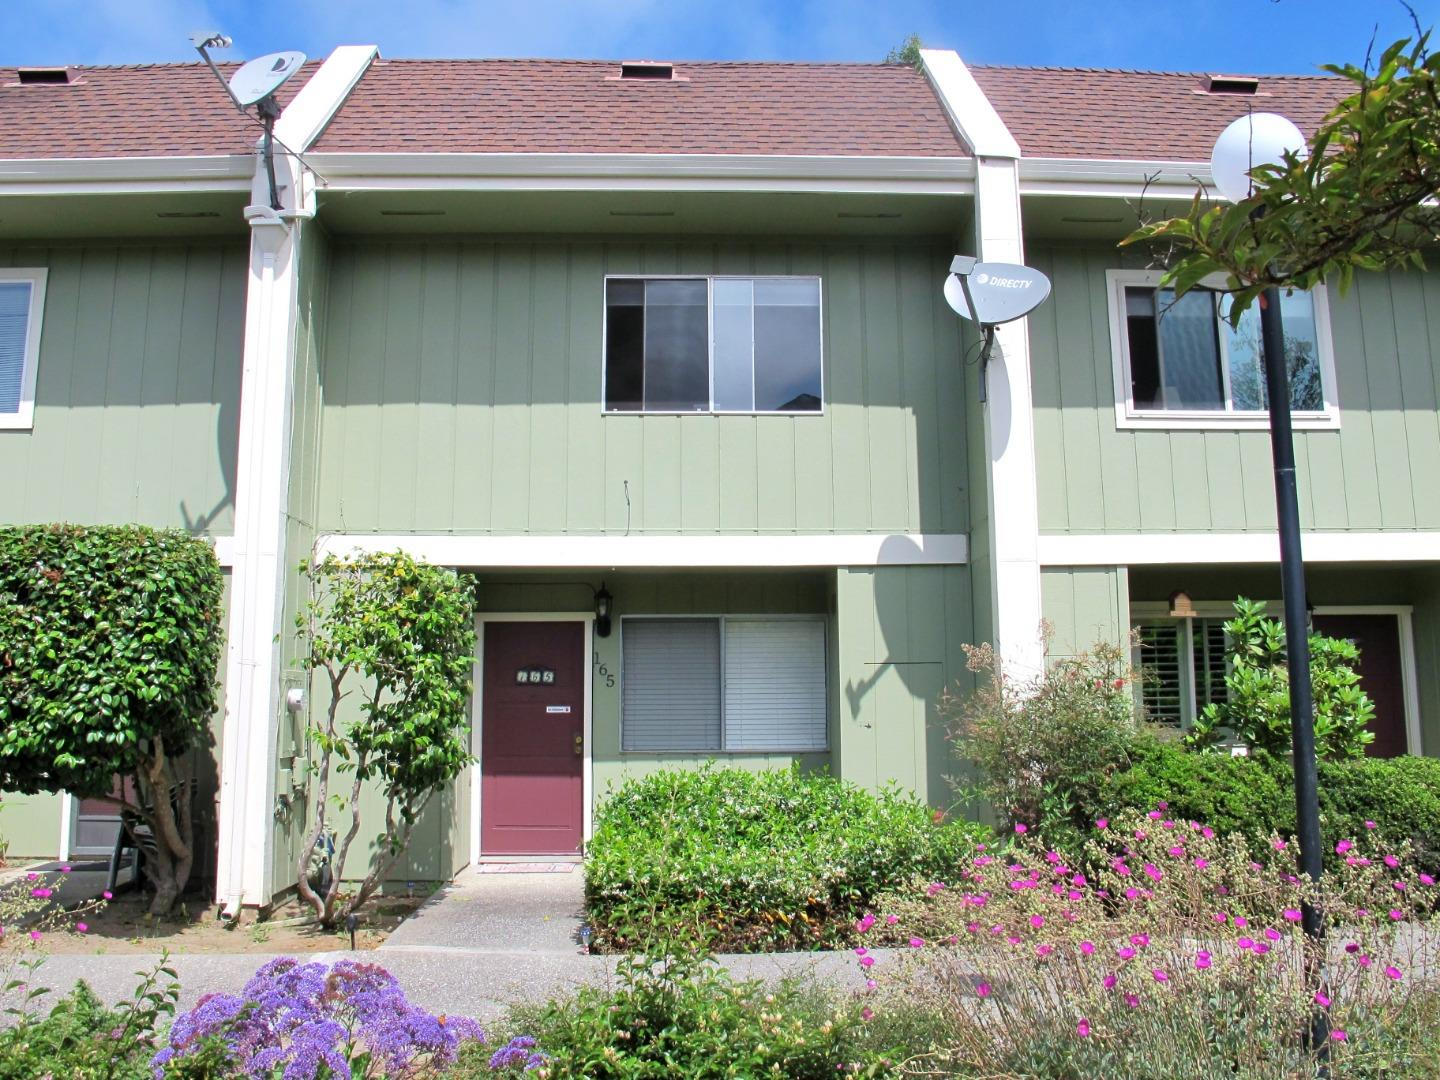 This back of the complex townhouse has 2-BR, 1.5-BA. Enter from the 2 assigned Carports or front door on the ground floor you will have a LR with wood laminate flooring that flows to a tiled kitchen/dining area, overlooking a private back patio. The kitchen has tile counters, wood cabinets, stove, and pantry with the laundry. A 1/2 bathroom is also on the 1st floor. A staircase w/wrought iron railing leads upstairs, where two carpeted BR & full bath are located. Spacious master BR has 2 closets, w/accordion doors & plenty of room for a separate sitting area. The main bath has a tiled floor, a separate vanity/sink area with extra storage space for linens, as well as a shower/tub combination & additional sink. The complex includes walking paths & a heated pool. A lush community garden & playground are nearby, walk or bike ride from the harbor or many other attractions, including beachside restaurants & coffee shops. During the blackouts in the area, townhouse did not lose power.